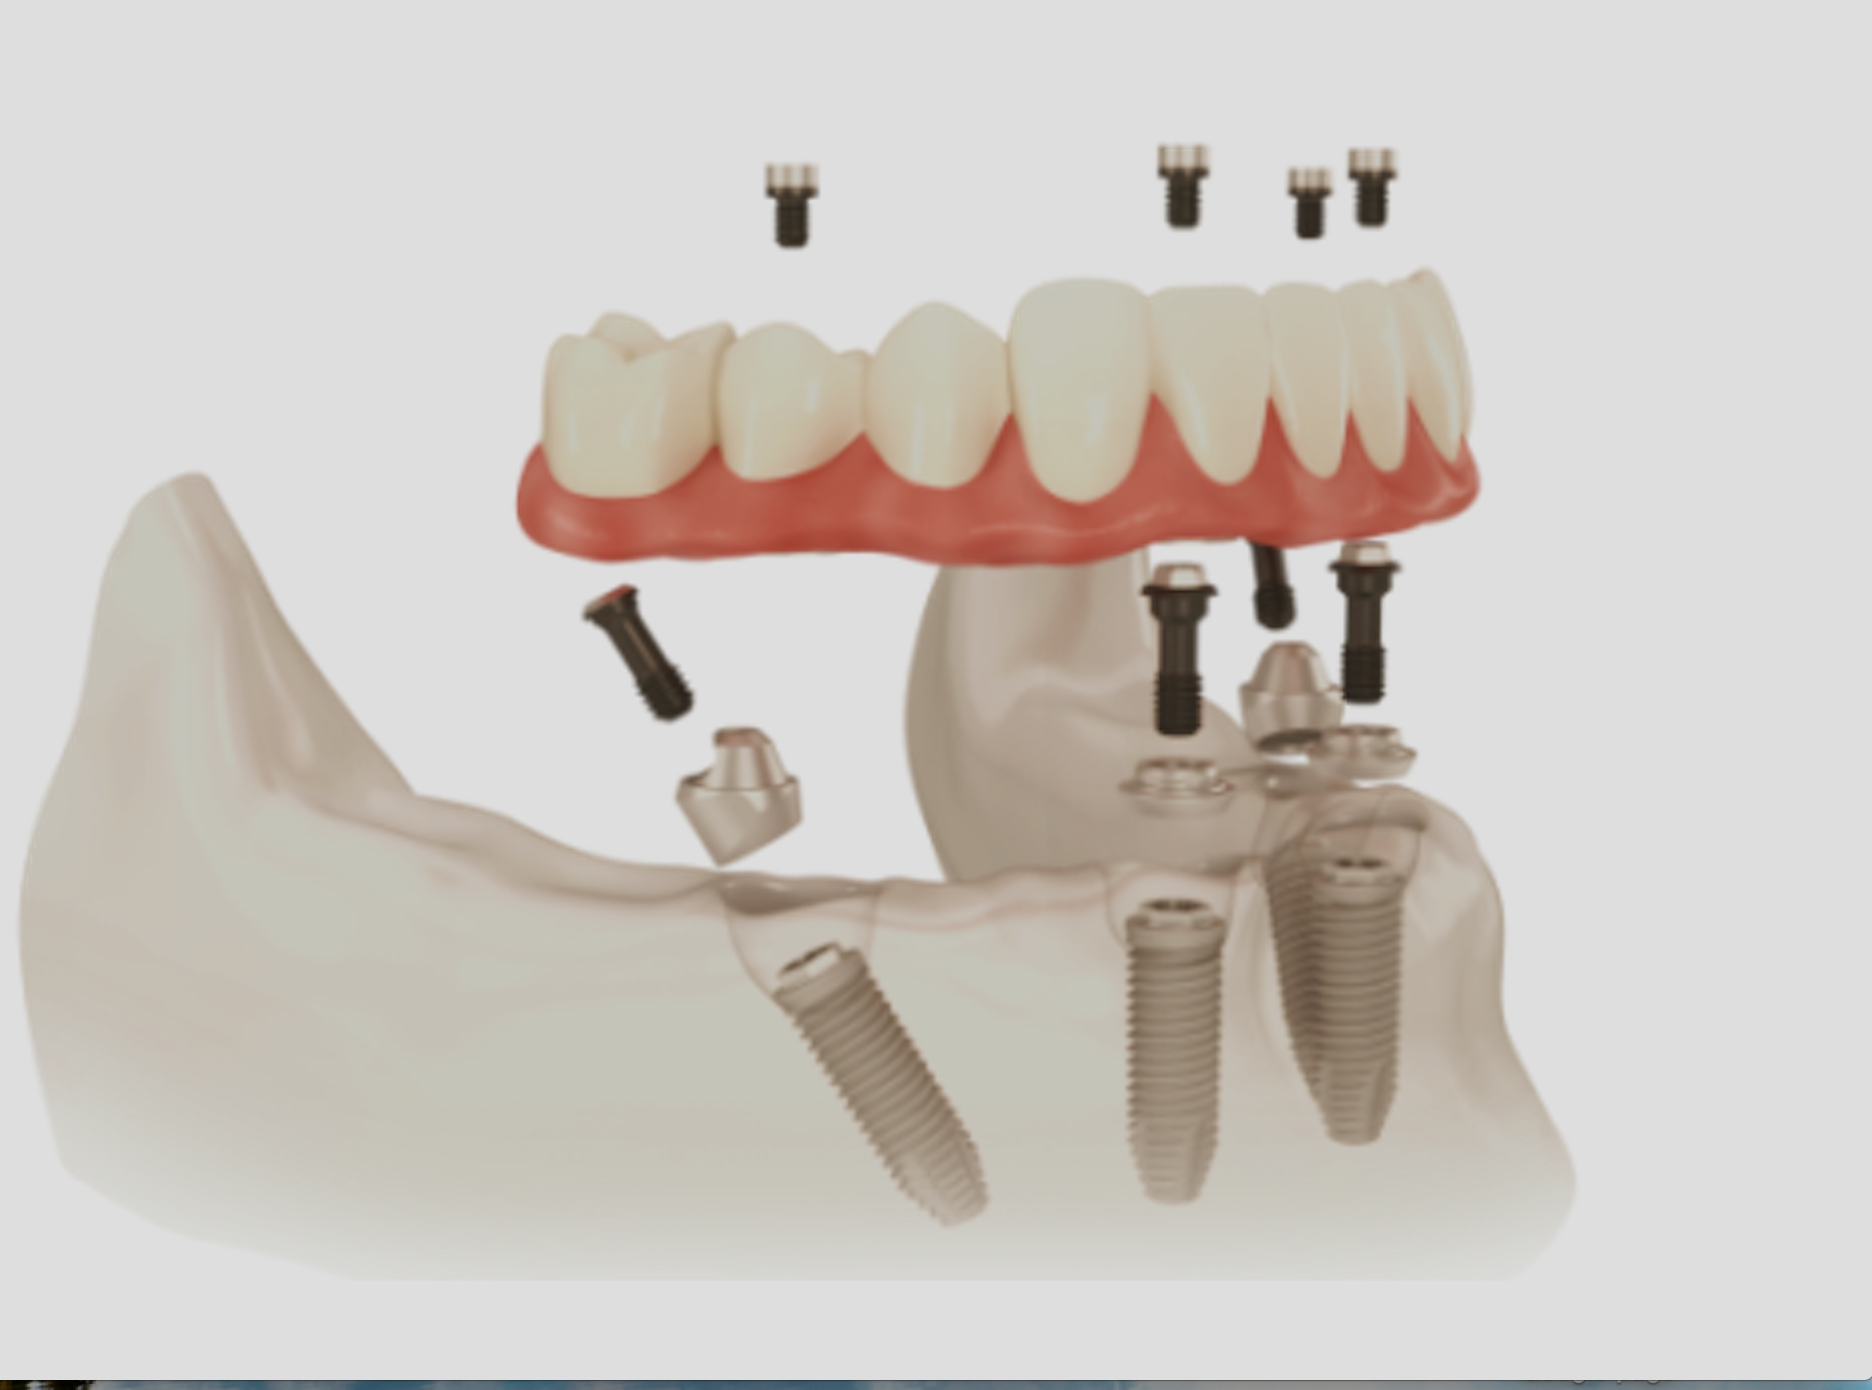 Dental Implants components